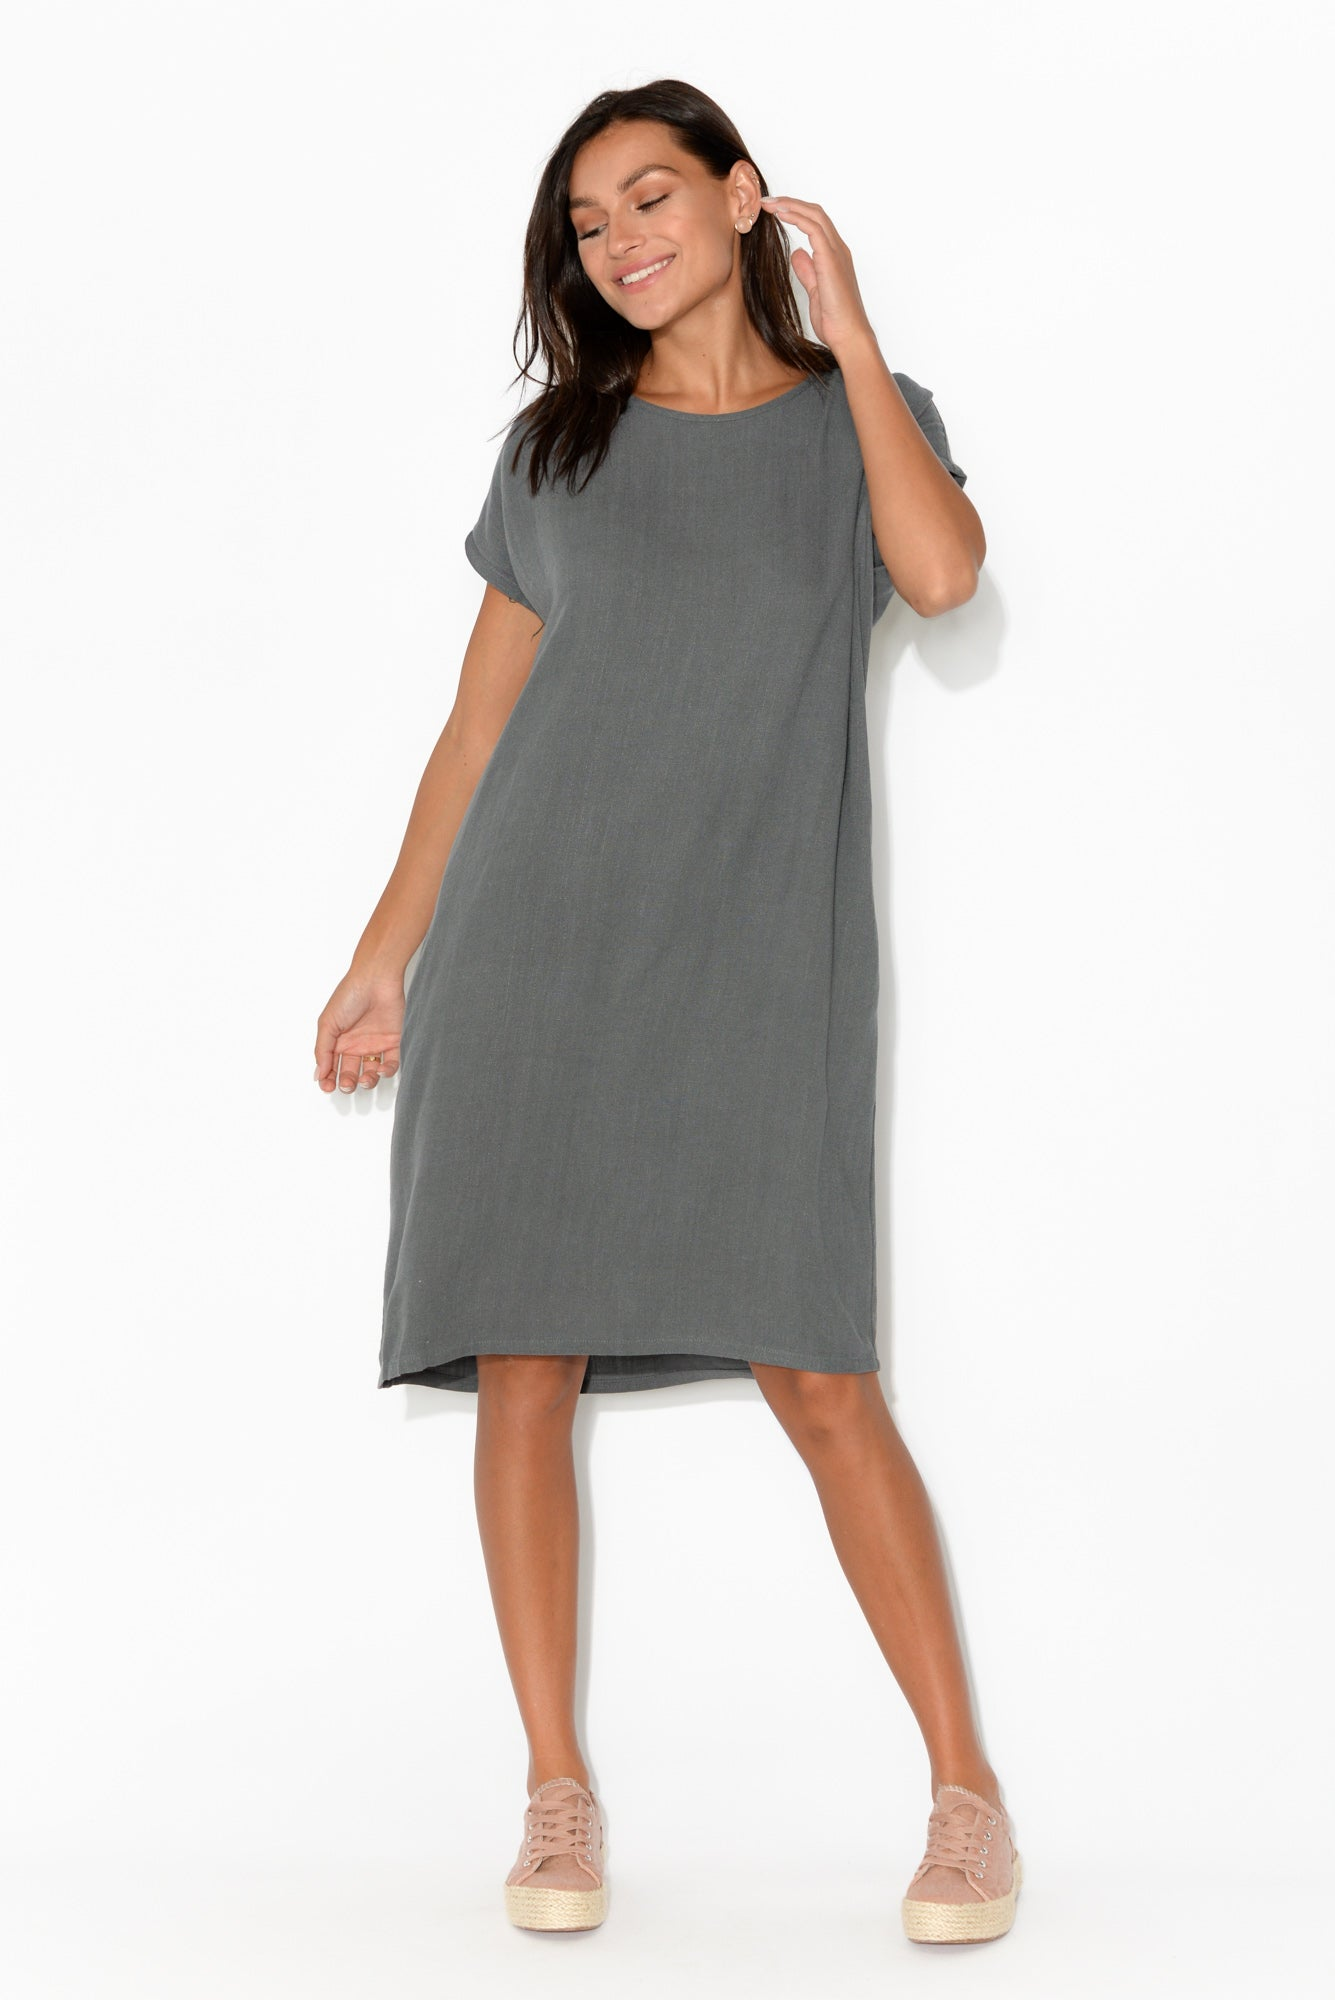 Aiden Charcoal Pocket Tee Dress